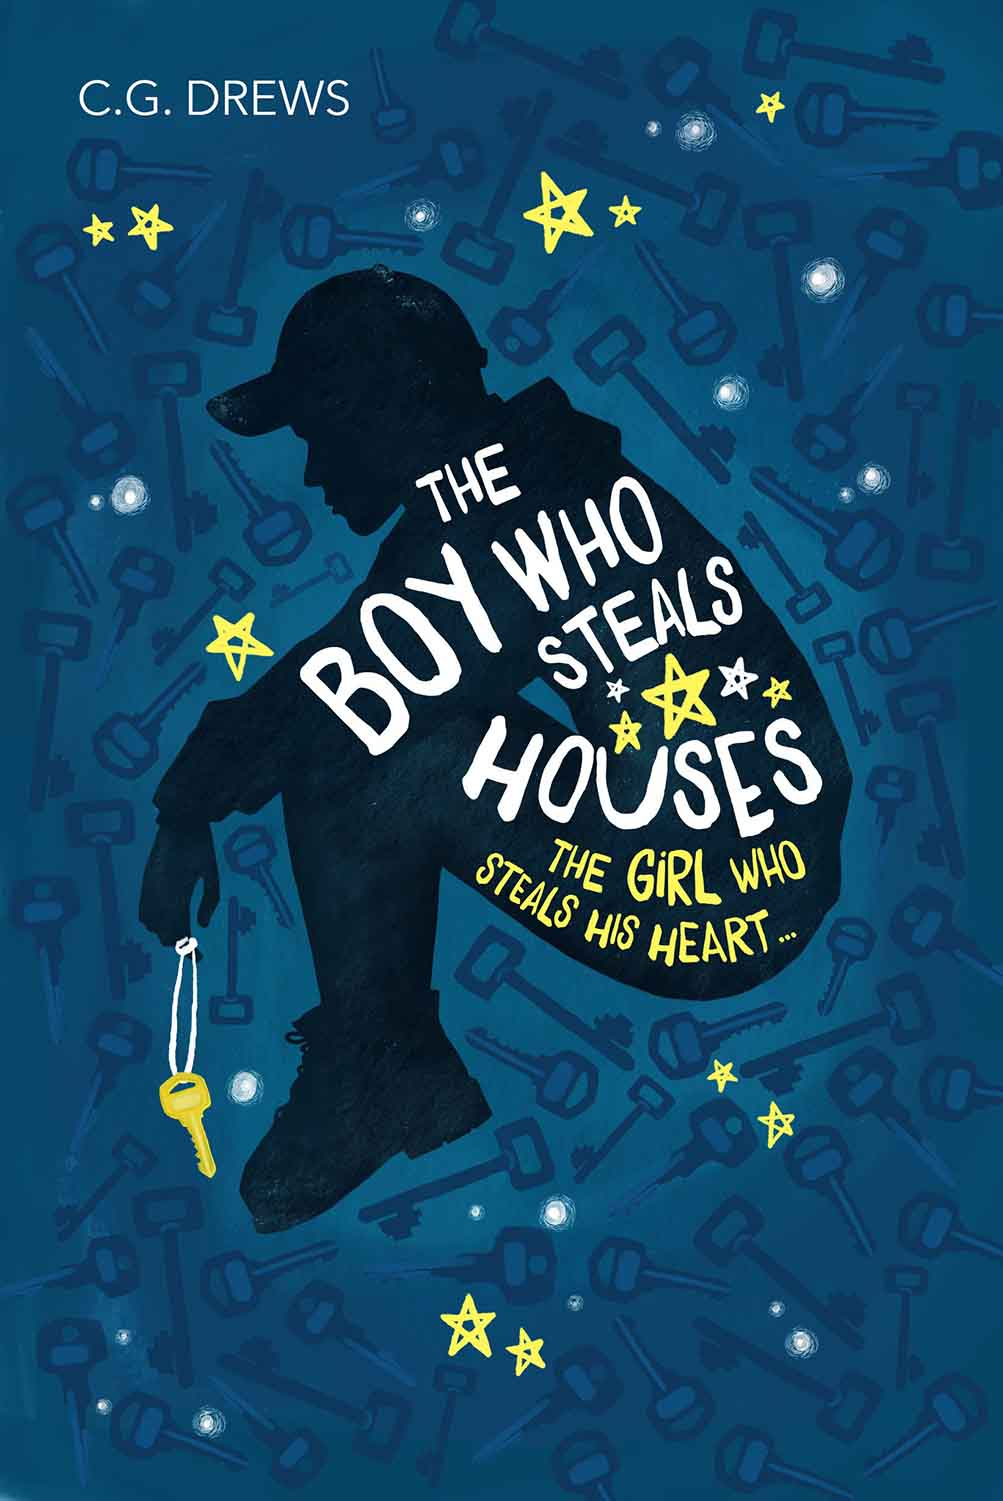 In her second novel, CG Drews tells of Sam, The Boy Who Steals Houses. It\'s a powerfully-written story of homeless brothers and family.  #PaperFury #CGDrews #TheBoyWhoStealsHouses #Books #YABooks #BookReview #MassConsternation